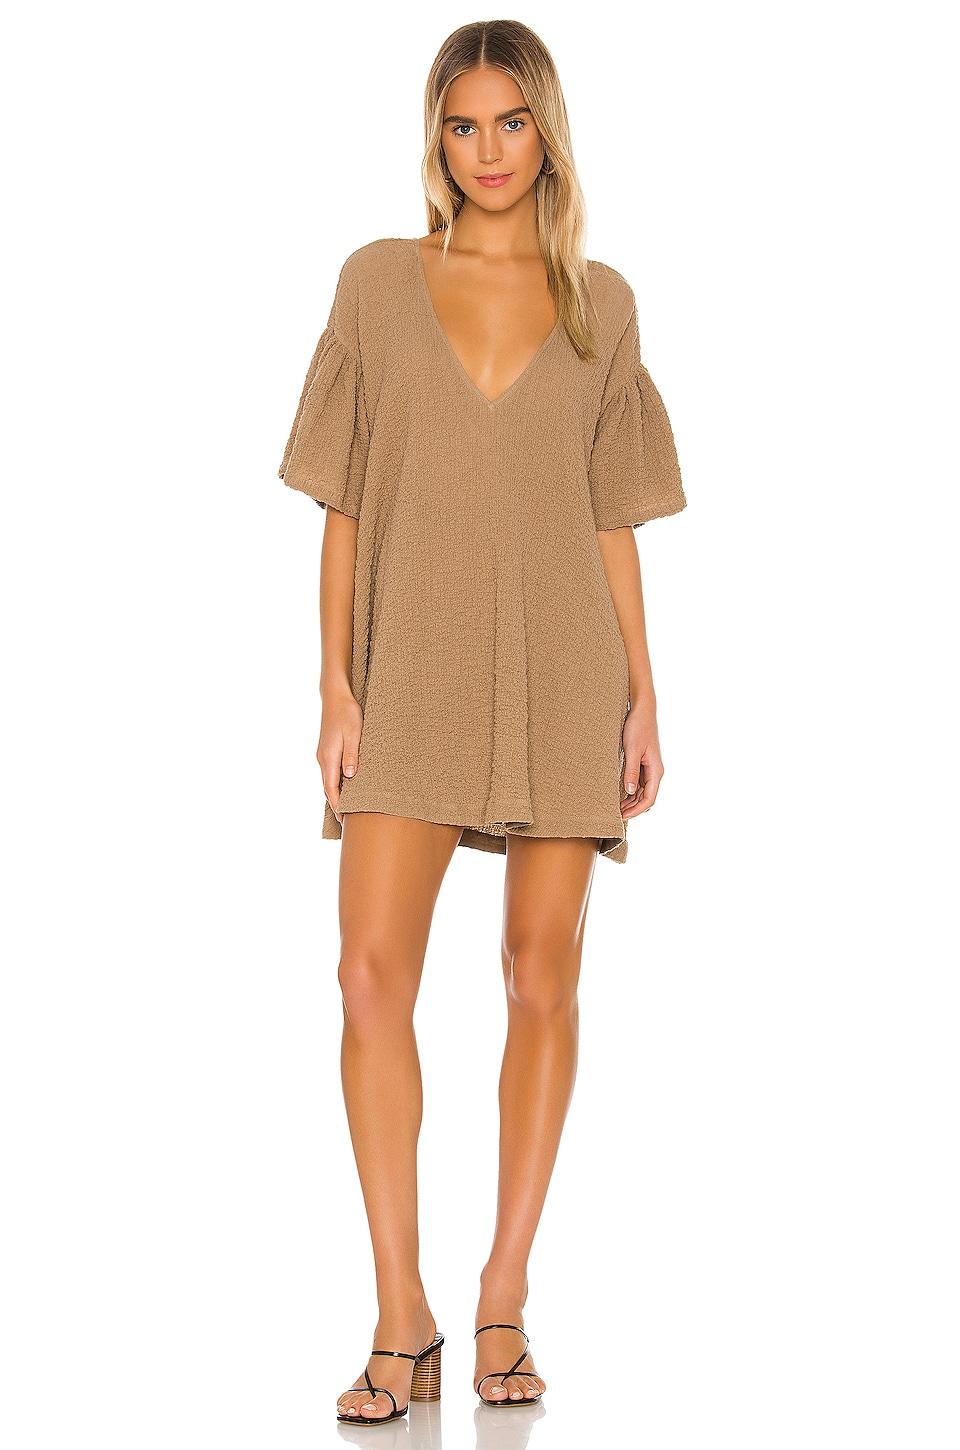 The Marva Mini Dress             L'Academie                                                                                                       CA$ 249.96 1